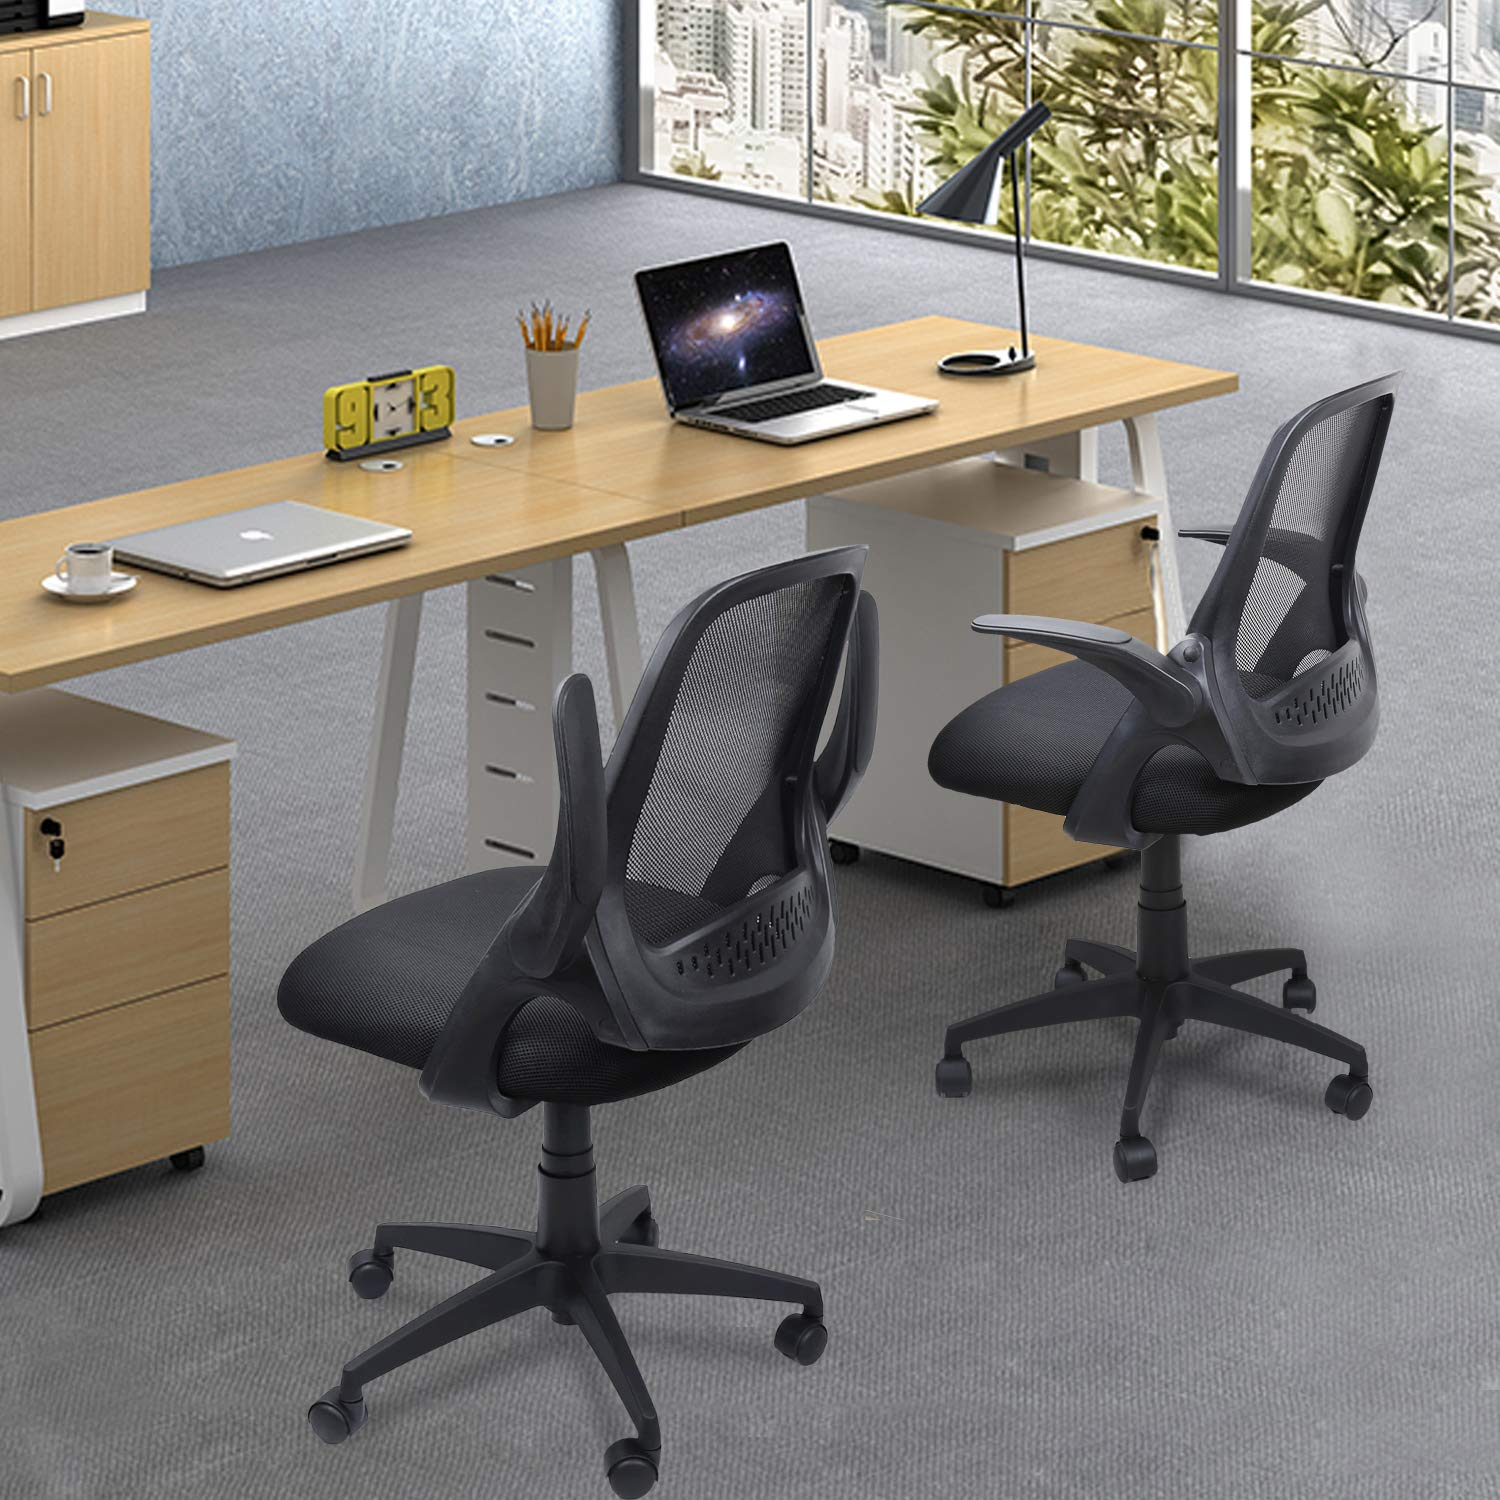 Ergousit Mid-Back Mesh Office Chair, Ergonomic Desk Chairs Swivel Computer Task Chairs with Adjustable Height and Flip-up Armrest - Lumbar Support and Sponge Cushion in Black (Black) by Ergousit (Image #8)